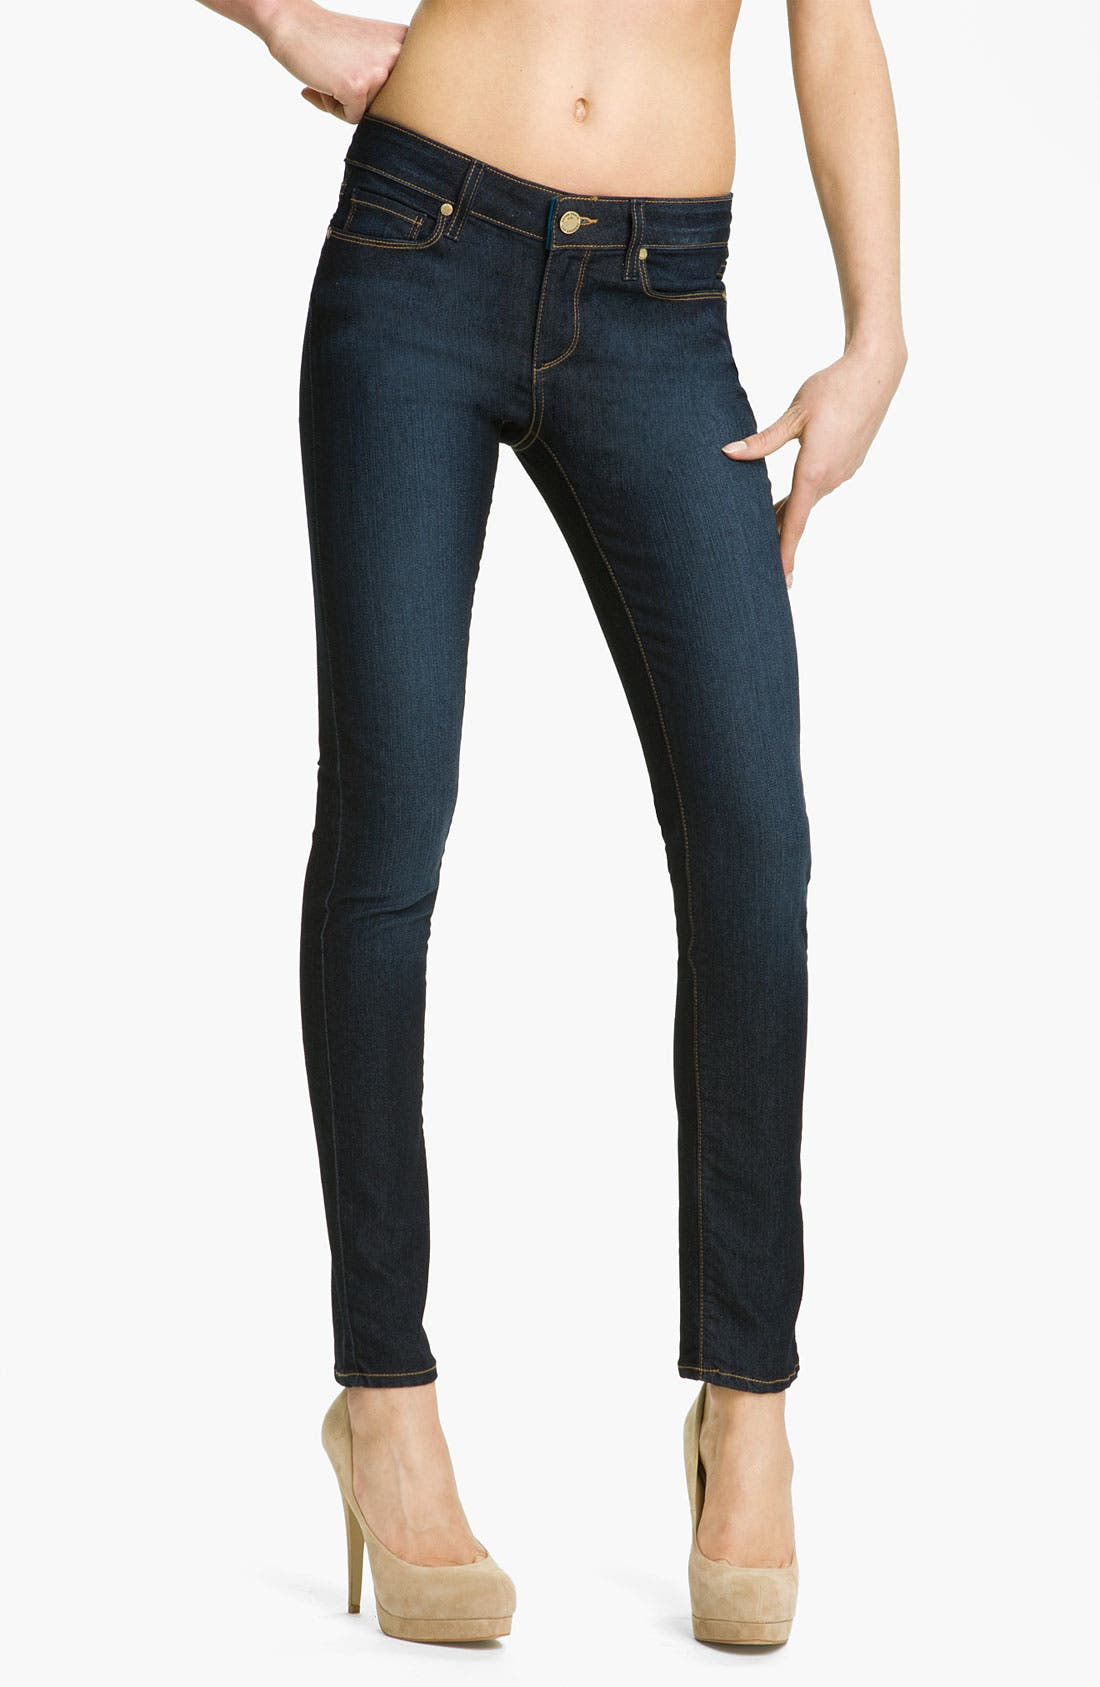 Alternate Image 1 Selected - Paige Denim 'Skyline' Stretch Skinny Jeans (Carson Wash)